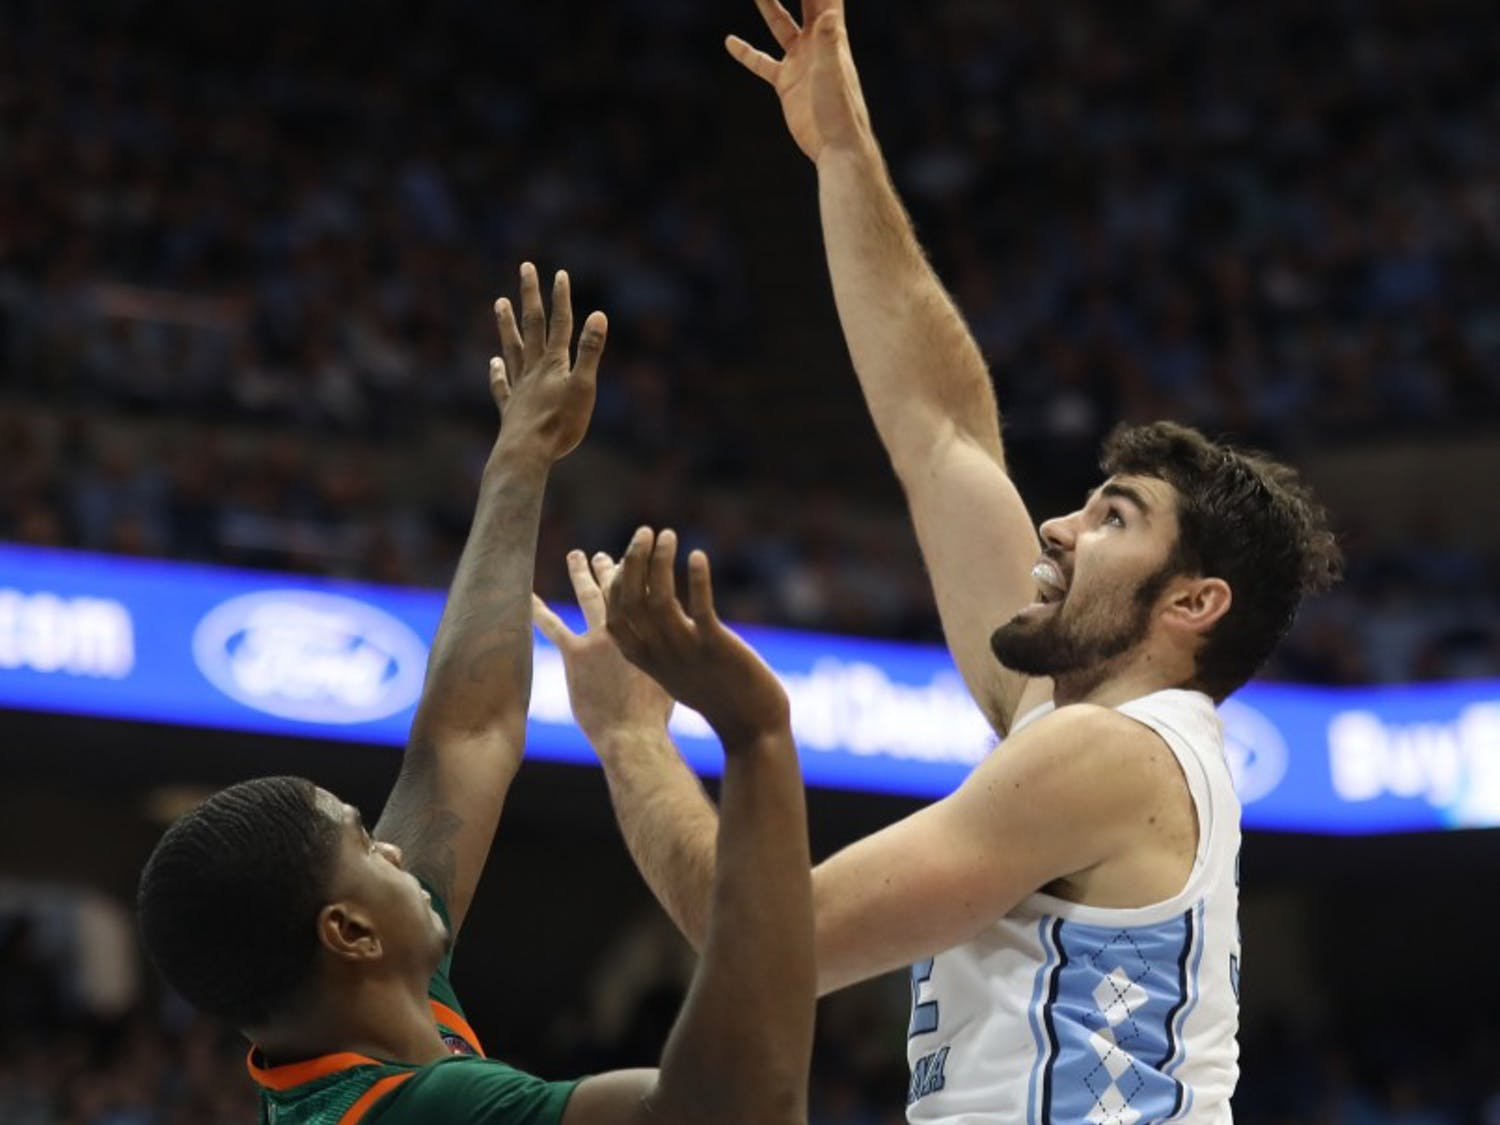 Miami senior guard Anthony Lawrence II (3) attempts to block a shot by UNC senior forward Luke Maye (32) on Saturday, Feb. 9, 2019 in the Smith Center. UNC men's basketball defeated Miami 88-85 in overtime. Maye scored 20 points for the Tar Heels.